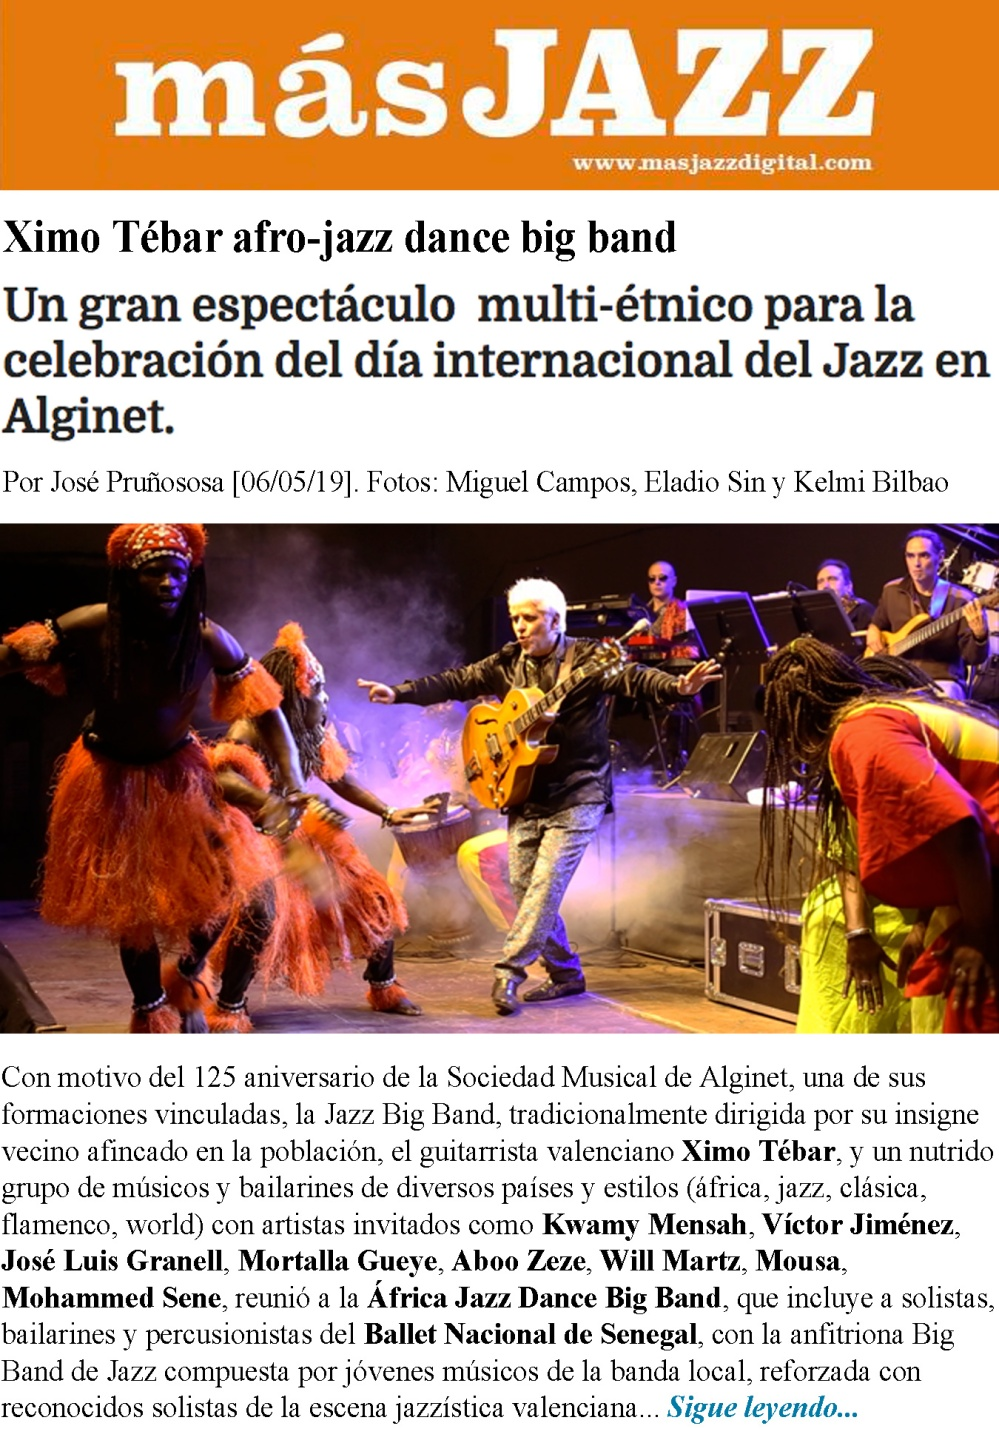 Mas-Jazz-Magazine-Ximo-Tebar-Africa-Jazz-Dance-Big-Band-International-Jazz-Day-2019-Review